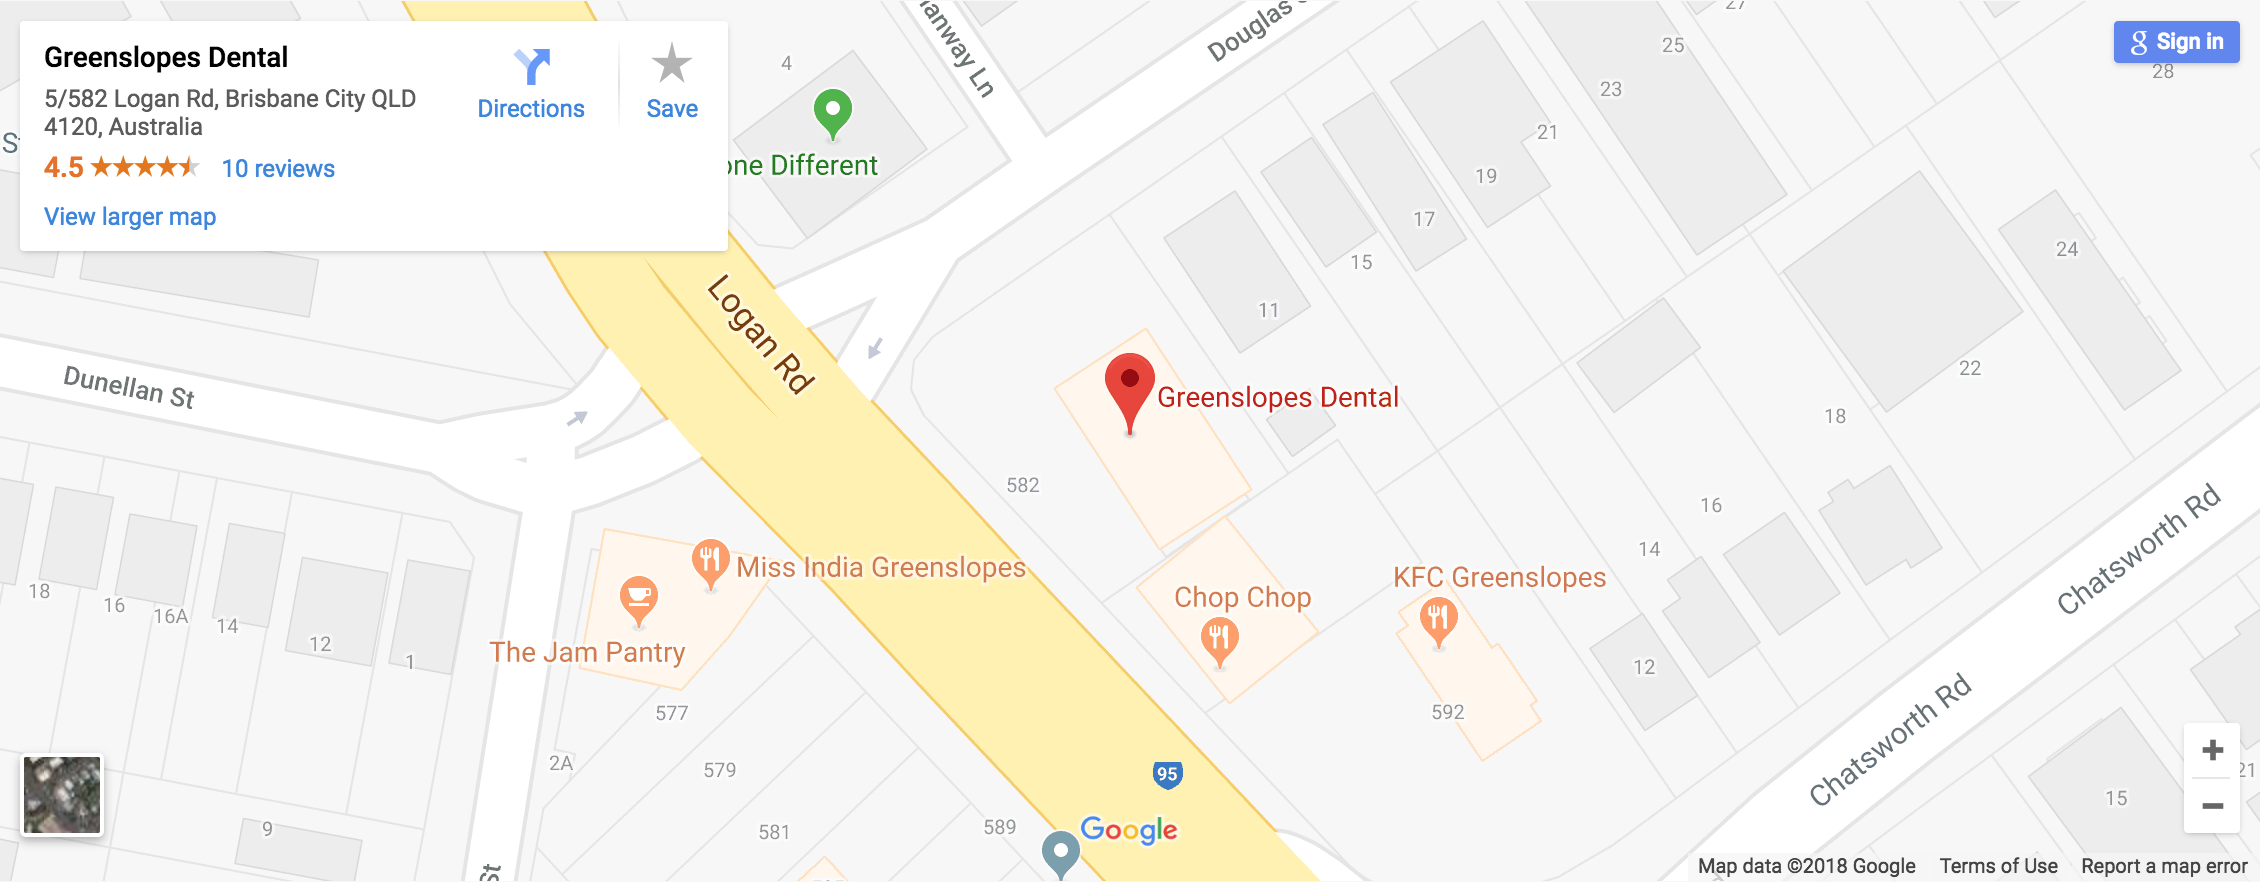 greenslopes dental brisbane location